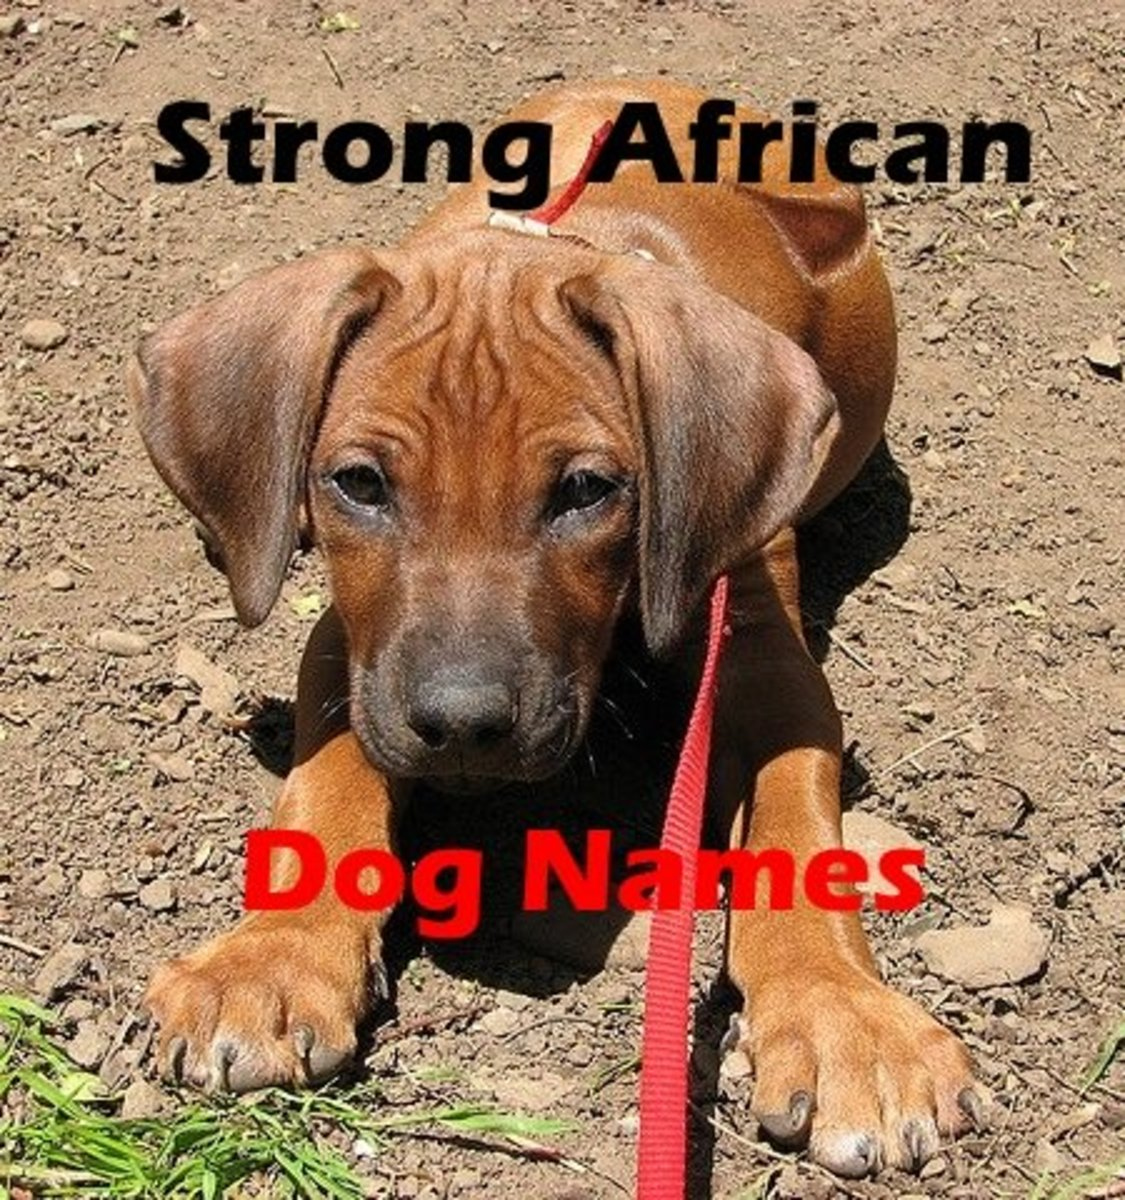 Strong African Dog Names For A Rhodesian Ridgeback From Ata To Zula Pethelpful By Fellow Animal Lovers And Experts